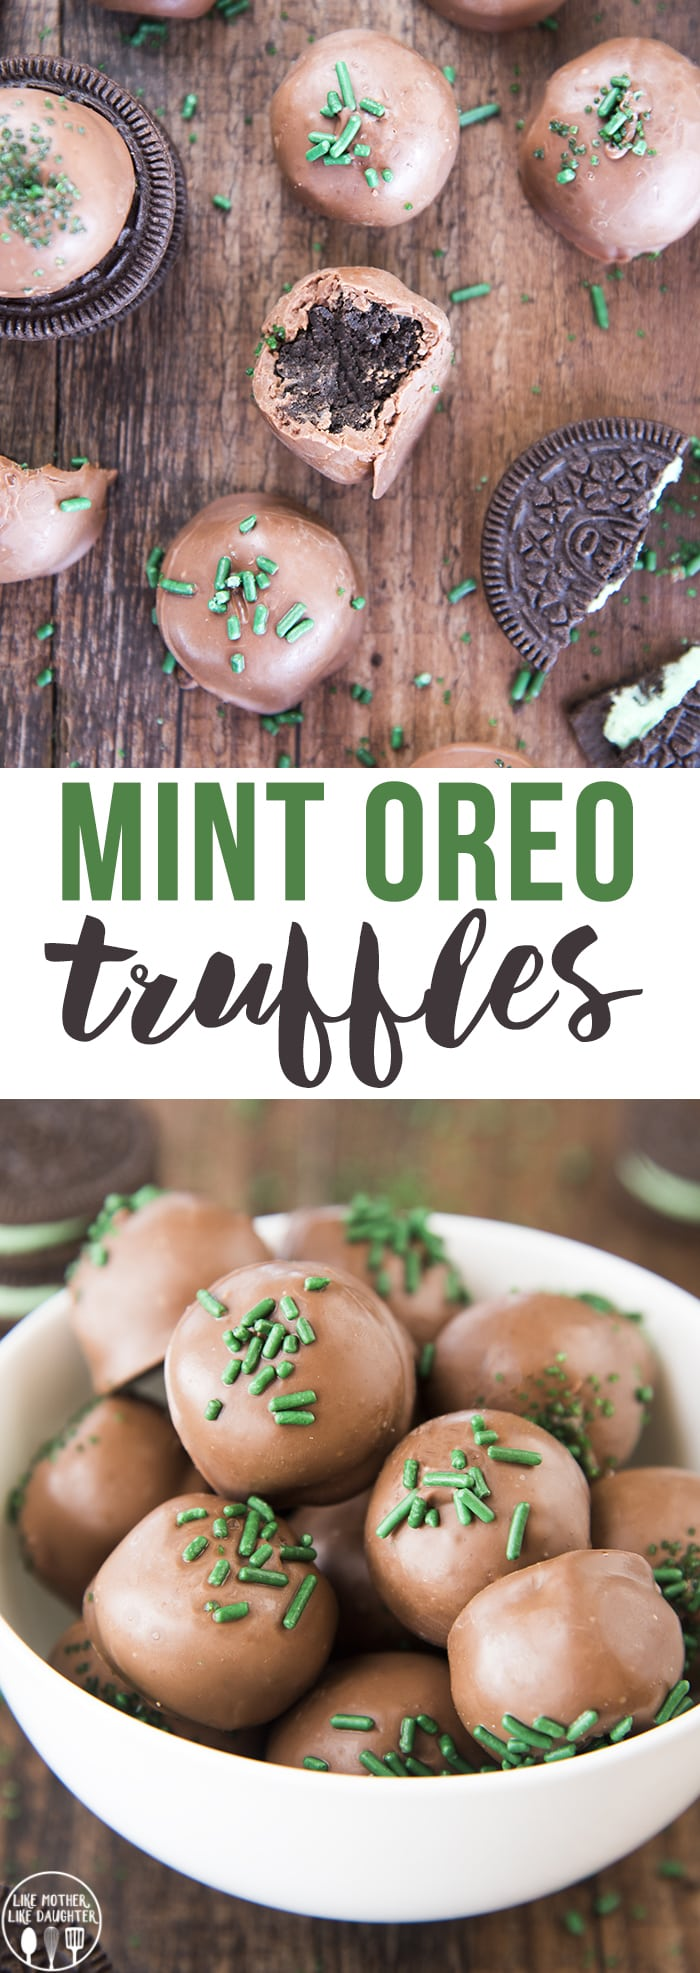 Mint Oreo Truffles are delicious 3 ingredient oreo balls made with cool mint Oreos for a sweet chocolate and mint treat!